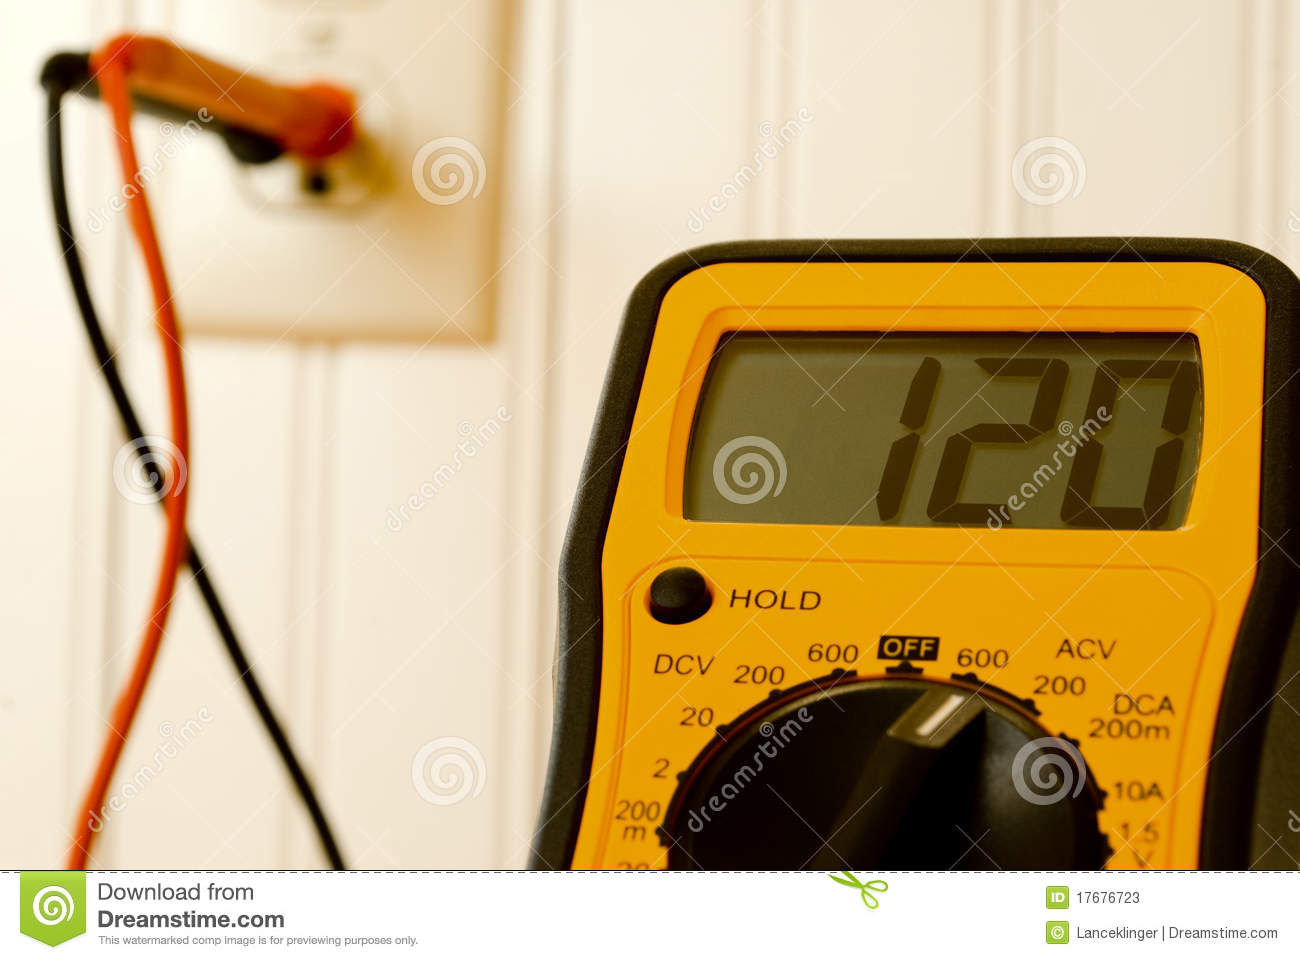 how to test wall outlet with multimeter